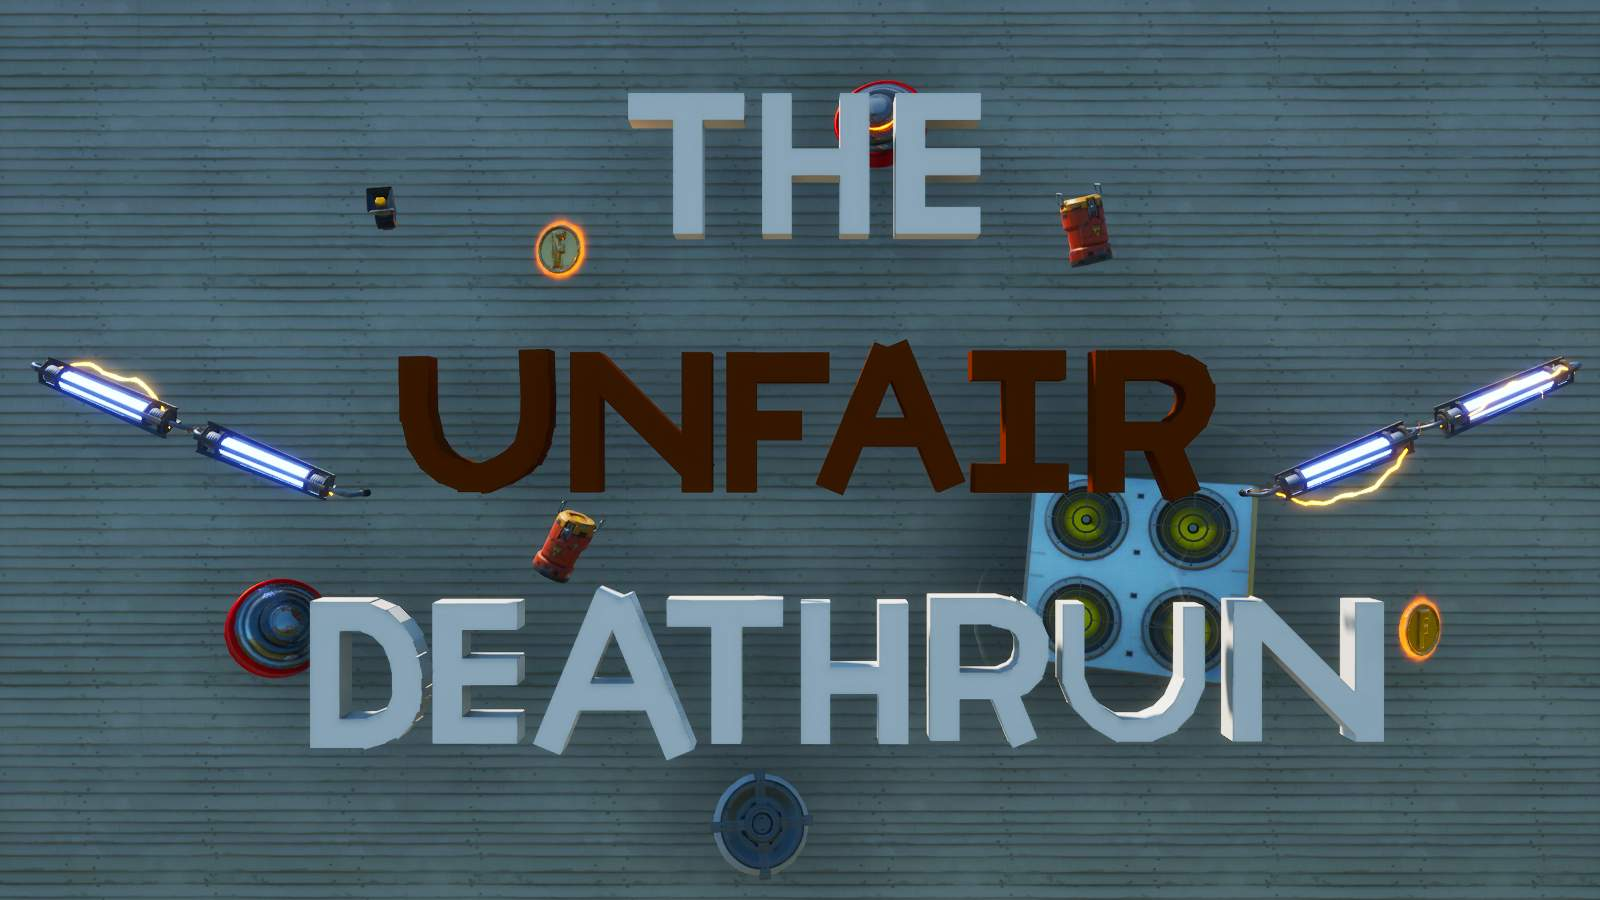 THE UNFAIR DEATHRUN - 10 LEVELS